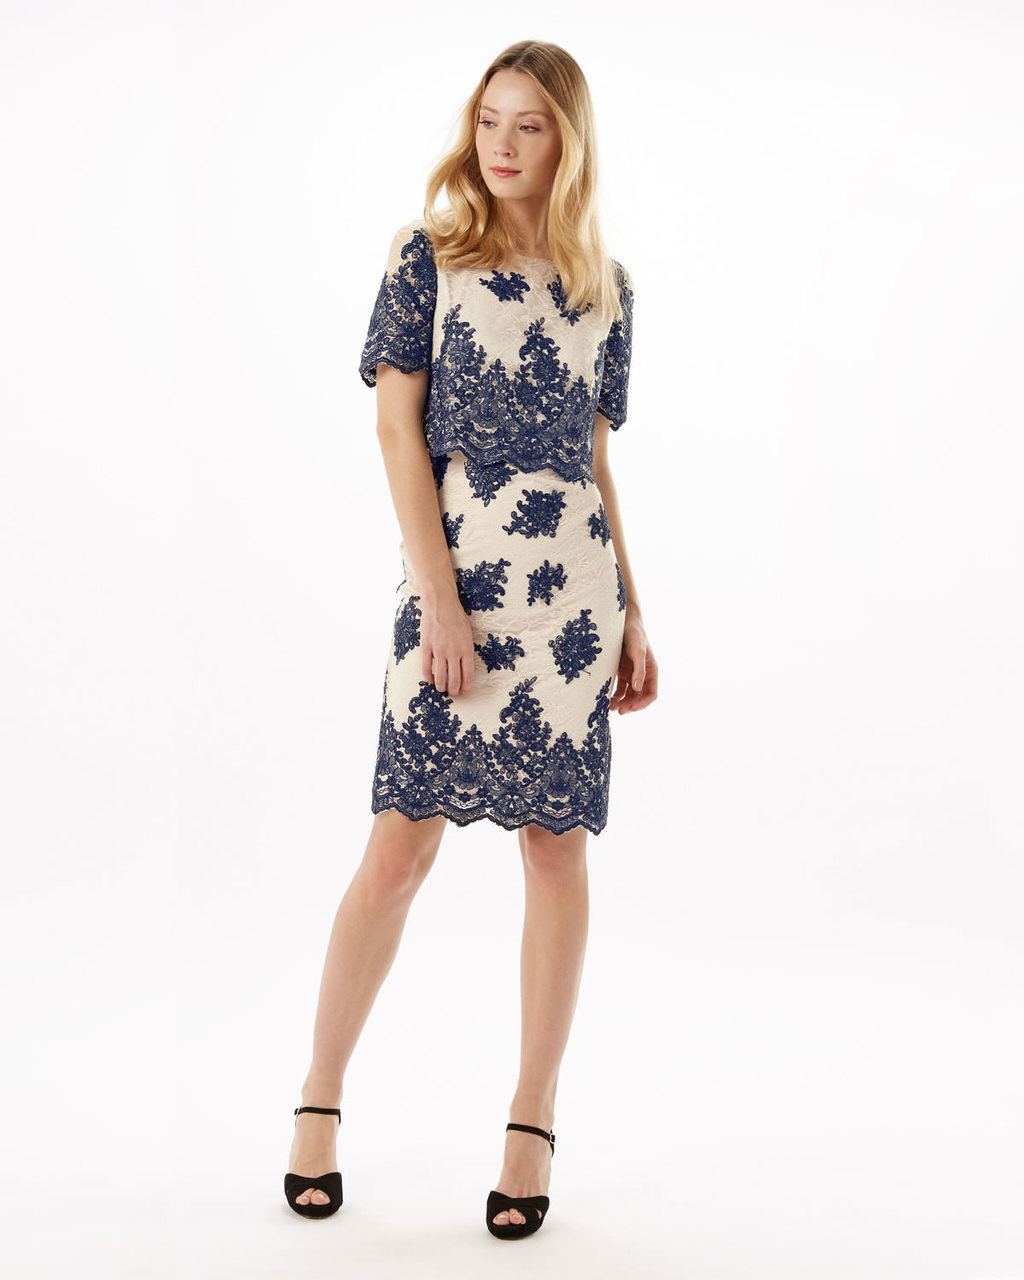 Ariel Lace Dress - style: shift; neckline: round neck; fit: tailored/fitted; hip detail: draws attention to hips; predominant colour: navy; secondary colour: navy; occasions: evening, occasion; length: just above the knee; fibres: polyester/polyamide - 100%; sleeve length: short sleeve; sleeve style: standard; pattern type: fabric; pattern size: standard; pattern: florals; texture group: other - light to midweight; embellishment: lace; season: s/s 2016; wardrobe: event; embellishment location: pattern